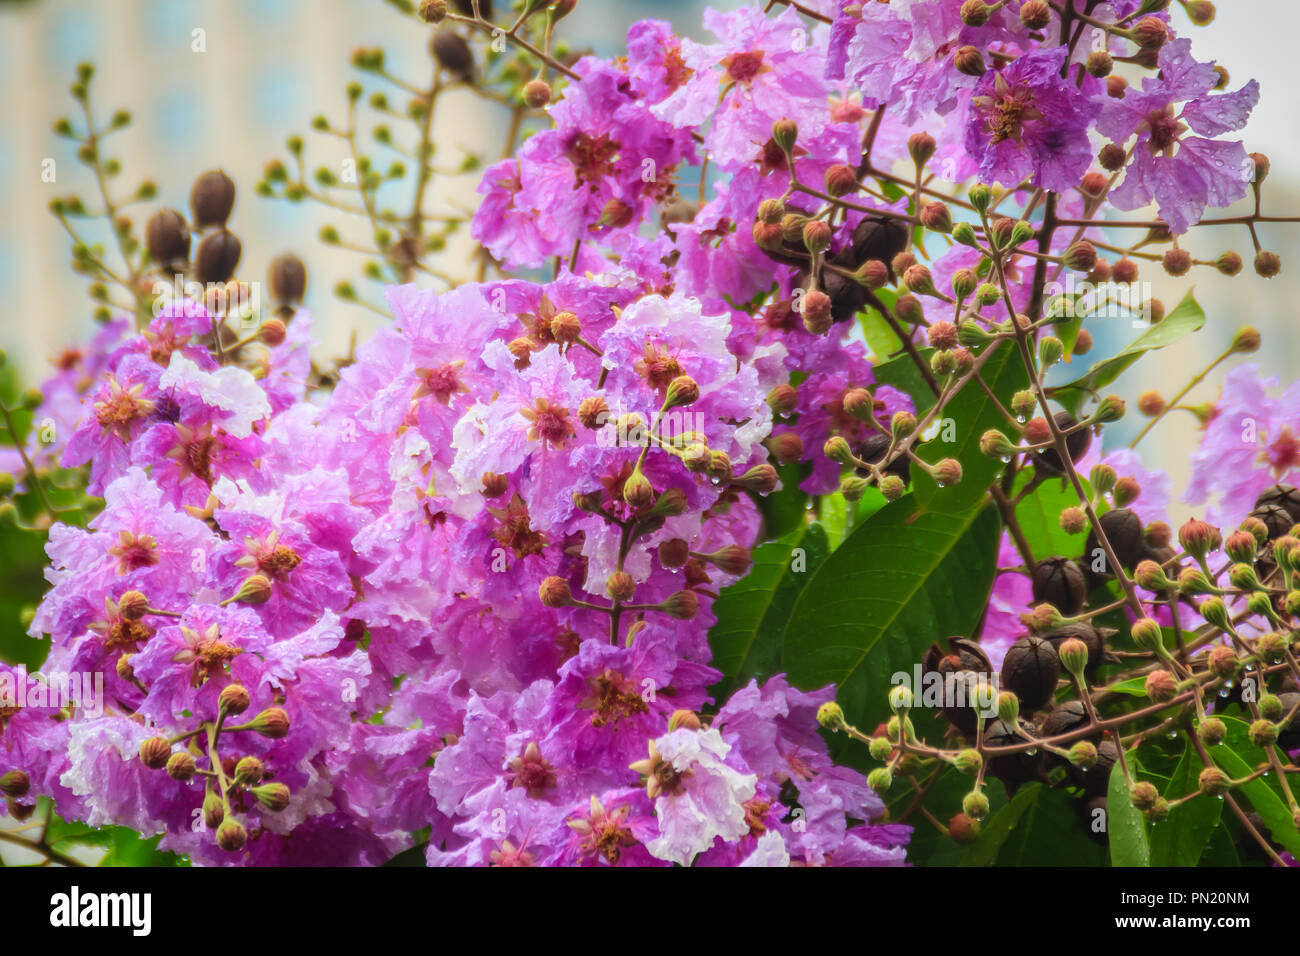 Beautiful purple flower of lagerstroemia speciosa giant crape beautiful purple flower of lagerstroemia speciosa giant crape myrtle queens crape myrtle banaba plant for philippines or pride of india species izmirmasajfo